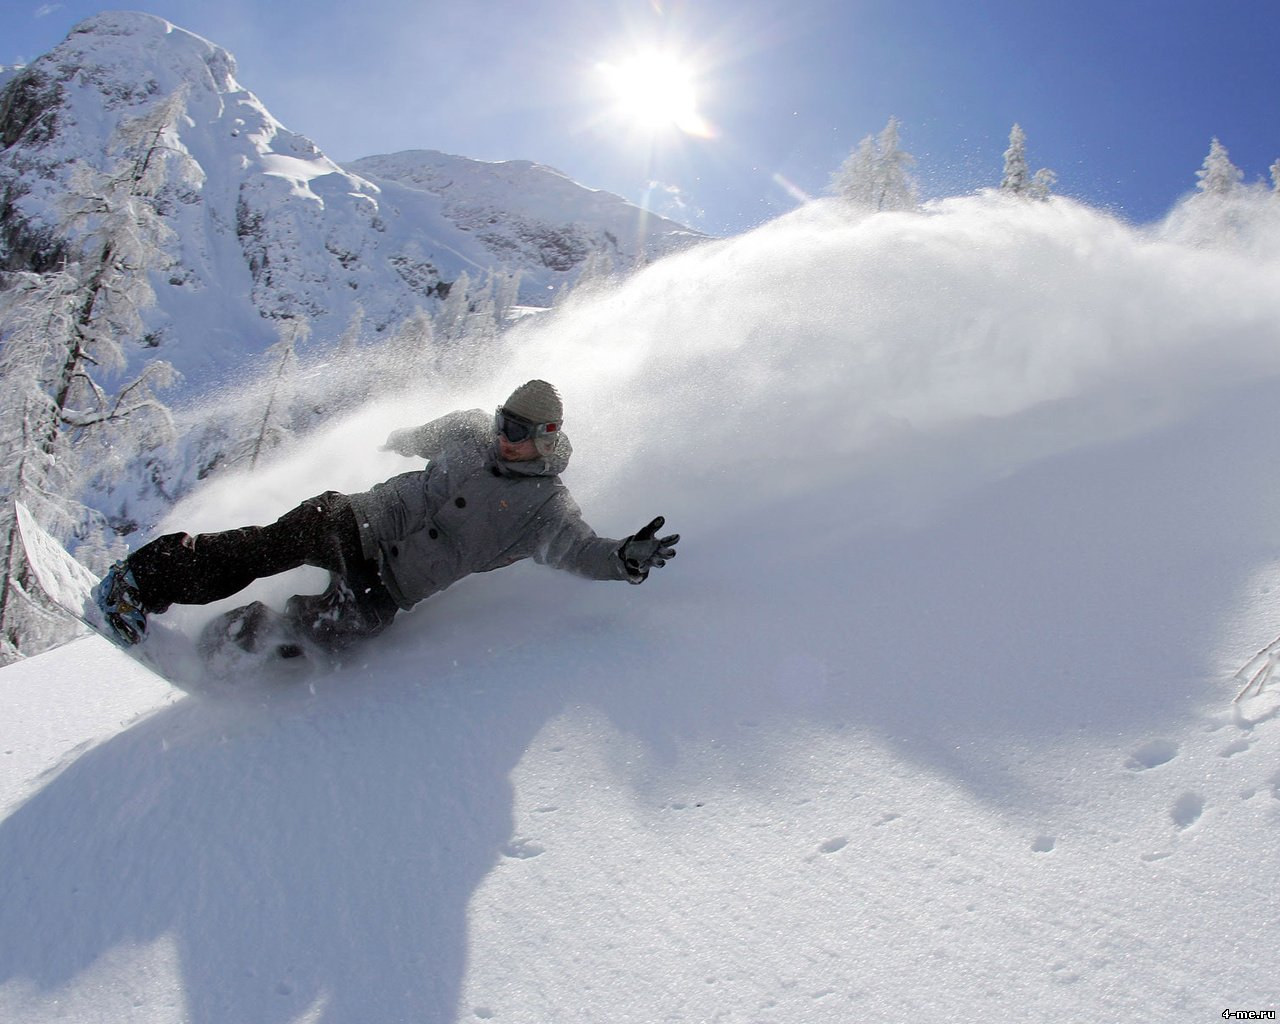 snowboarding wallpapers high quality download free